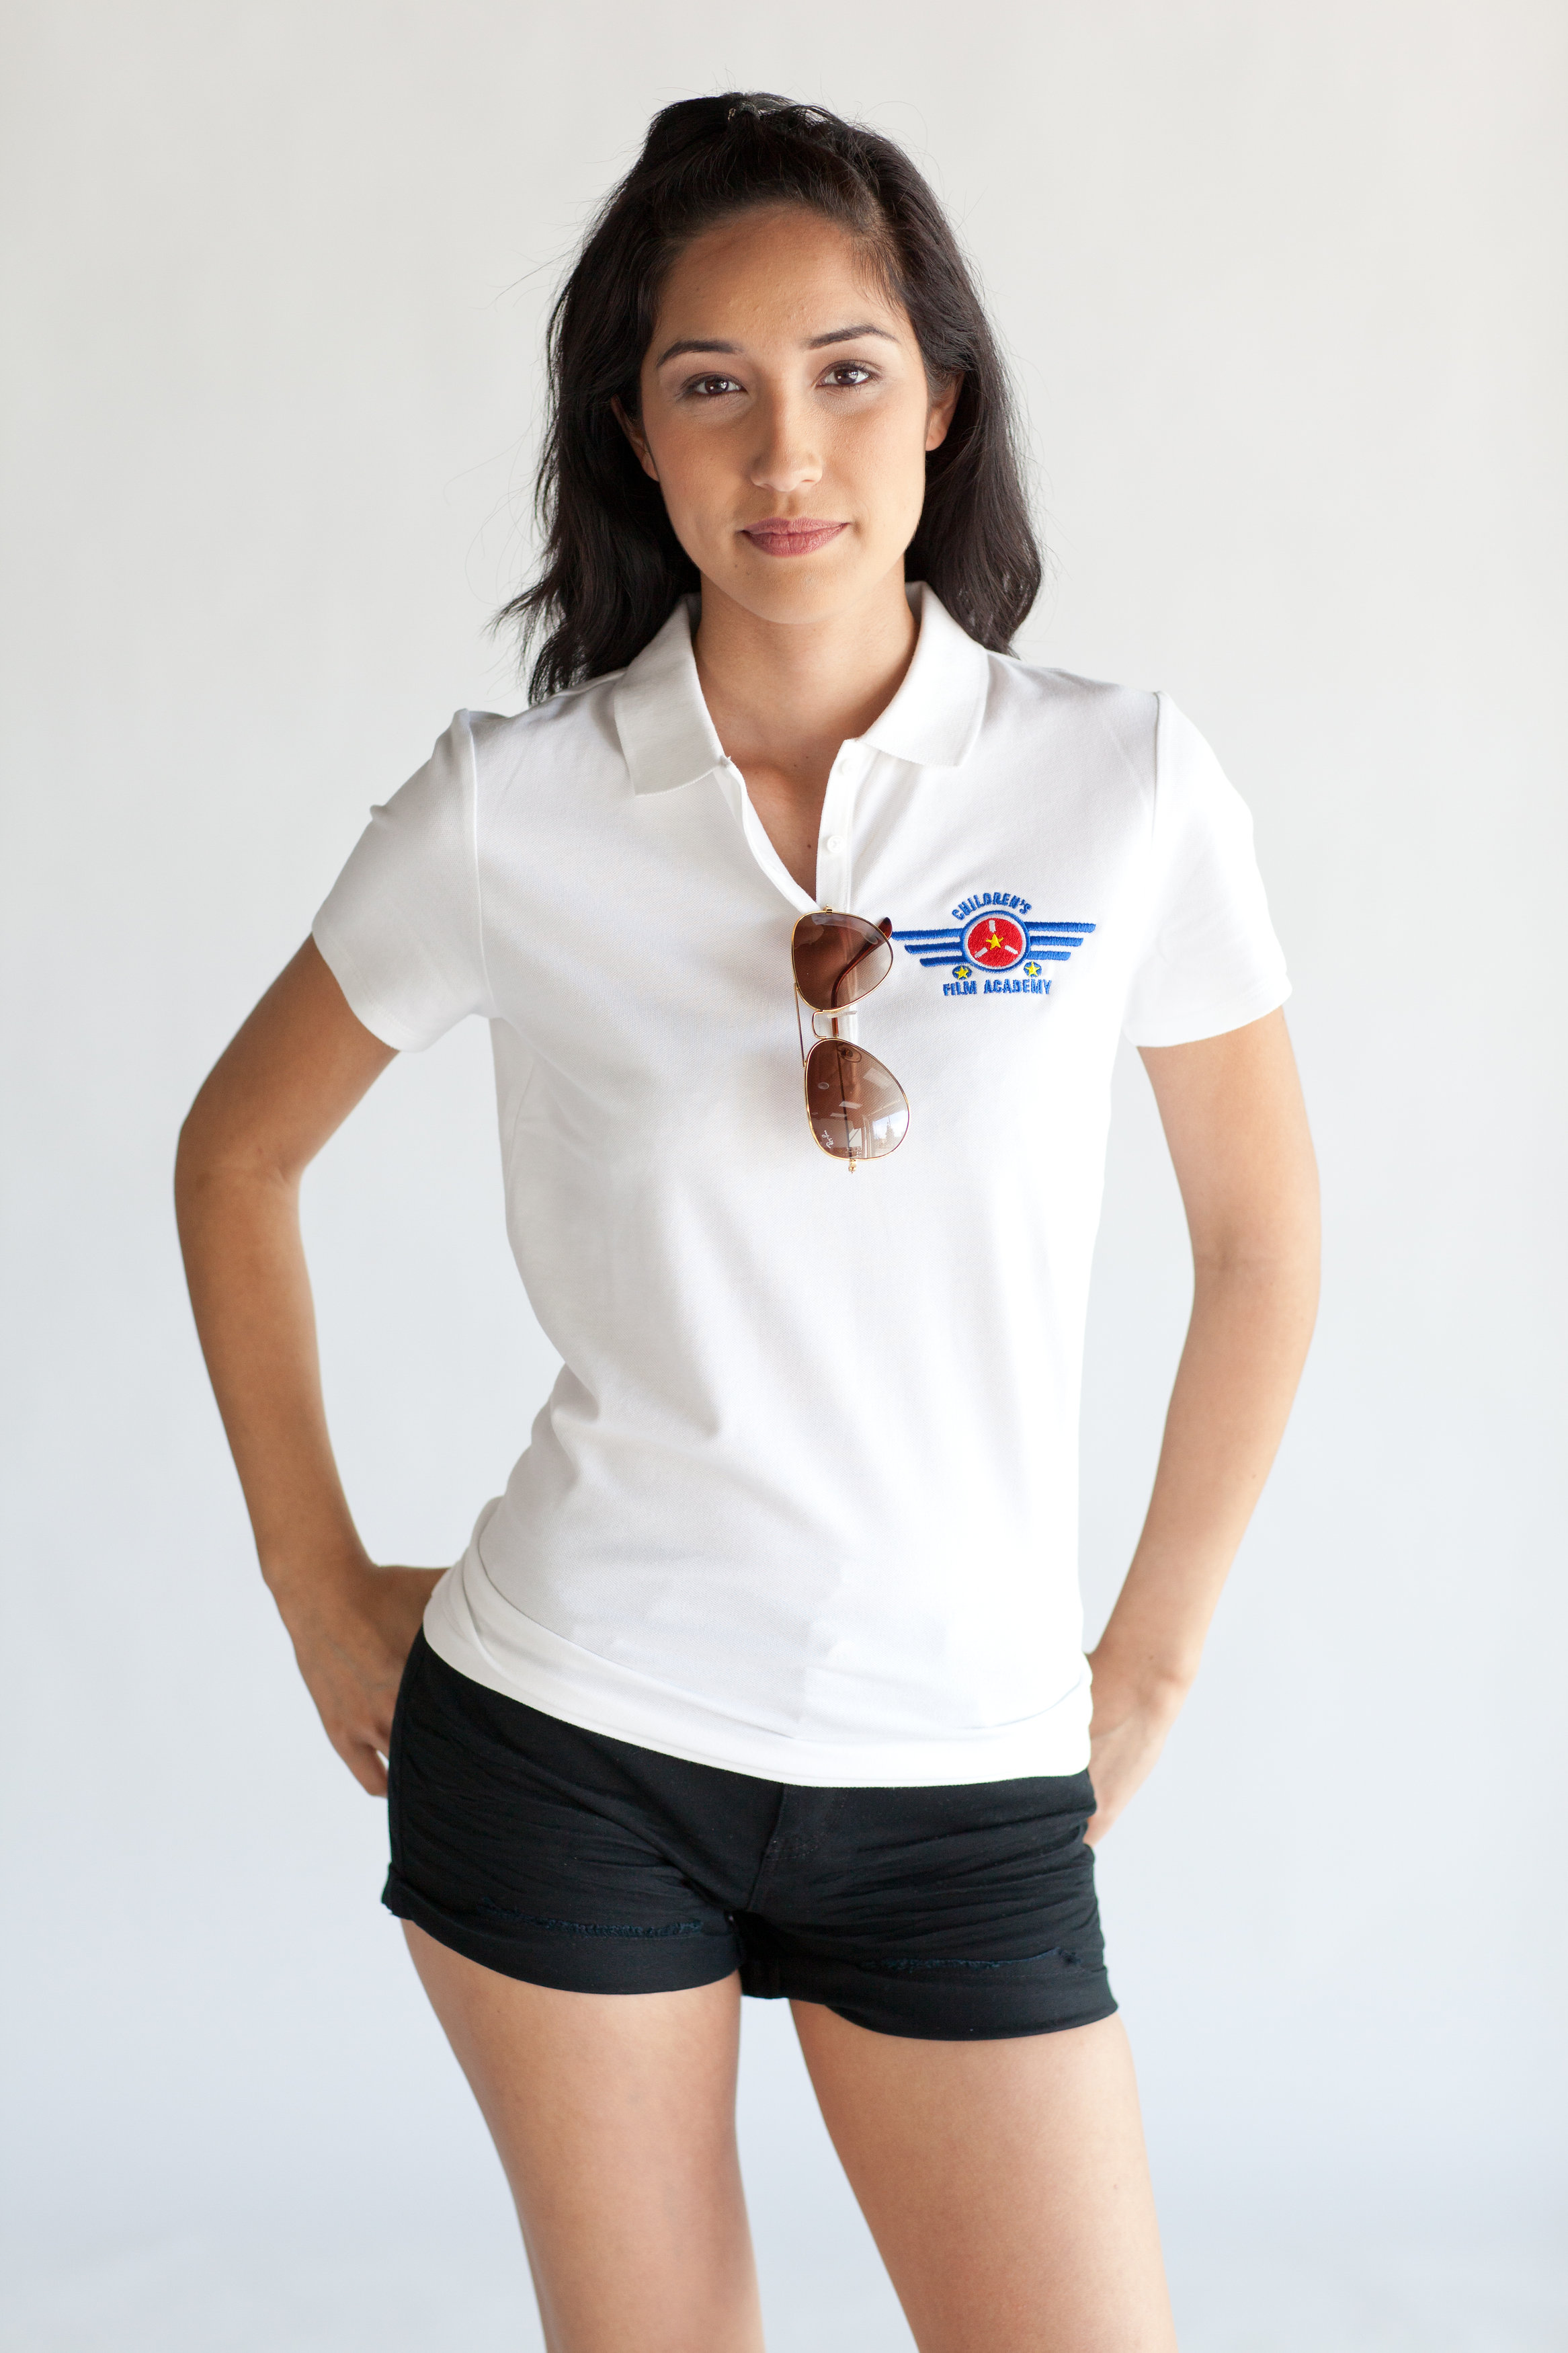 Woman's White Academy Polo $18